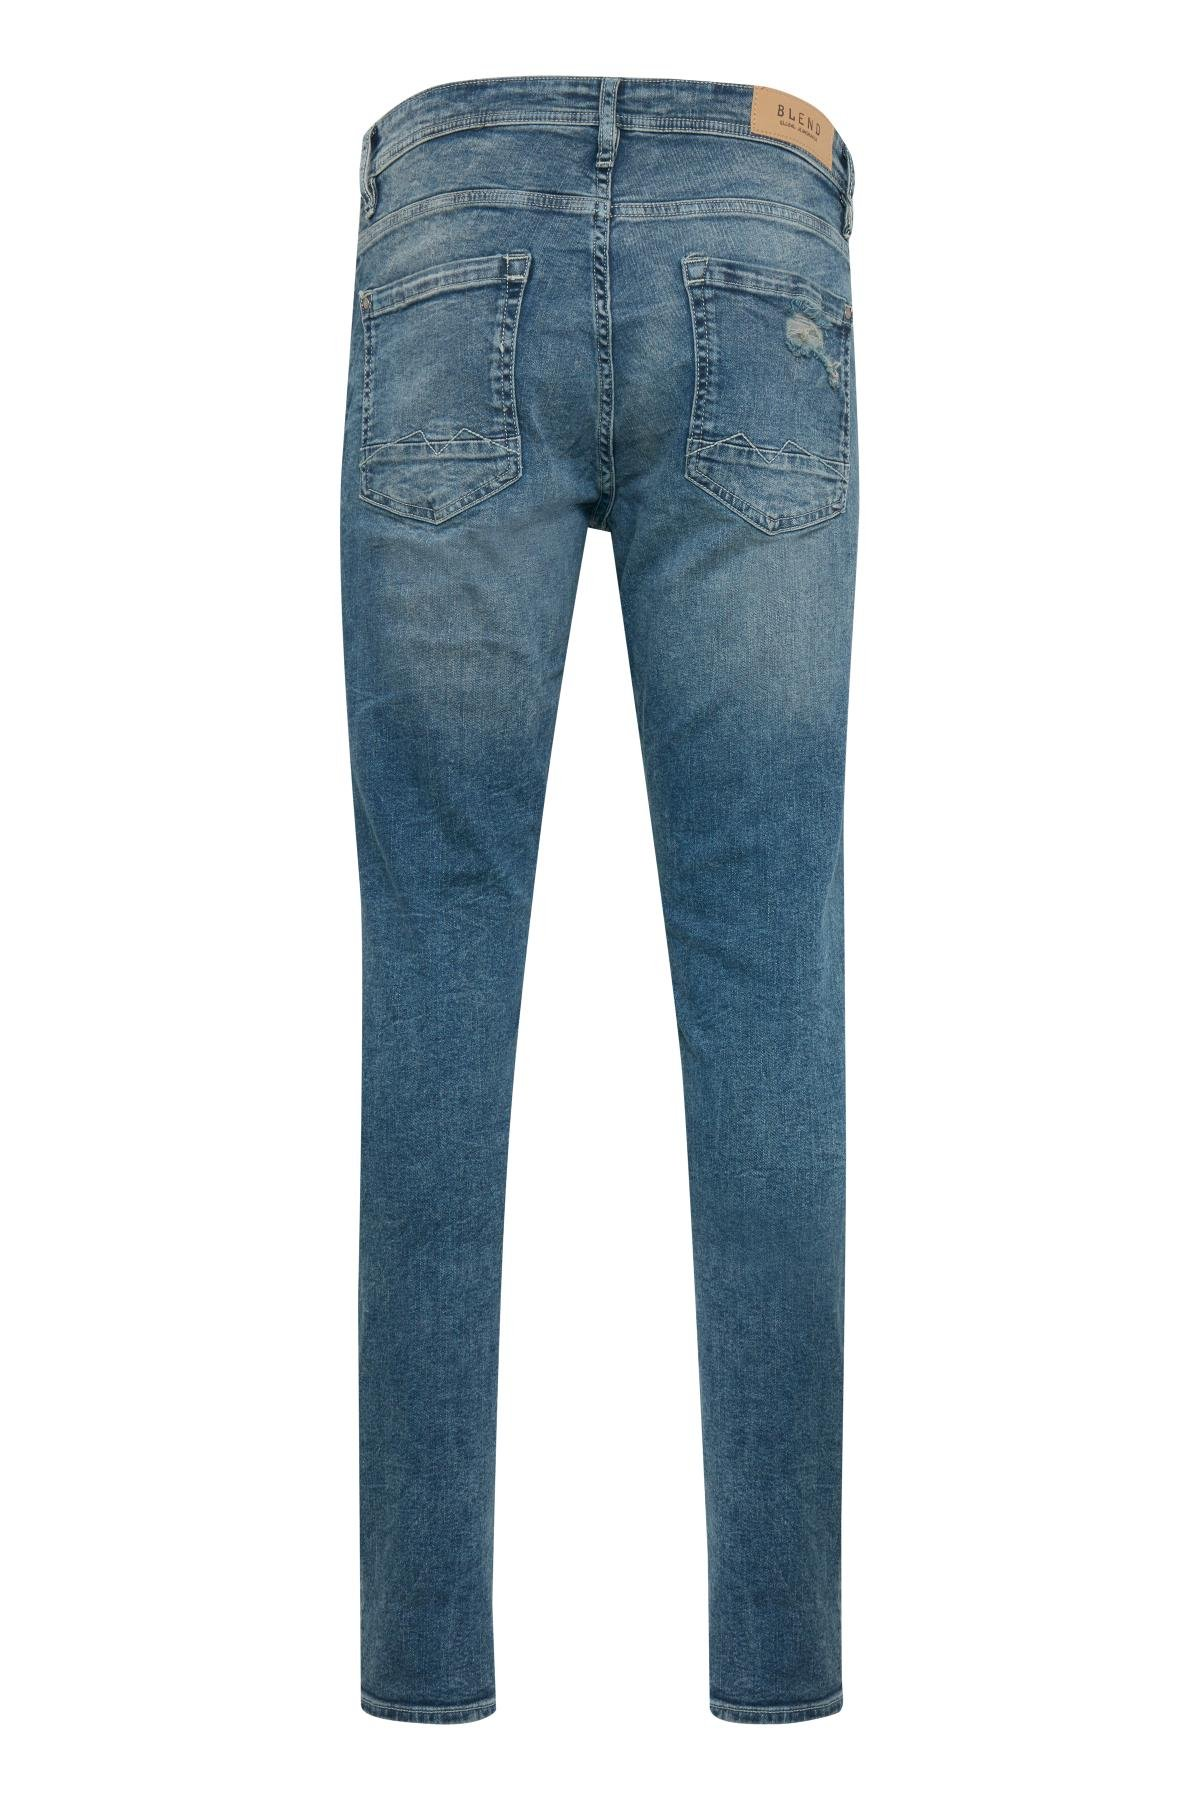 Denim Middle blue Jet jeans – Køb Denim Middle blue Jet jeans fra str. 28-40 her